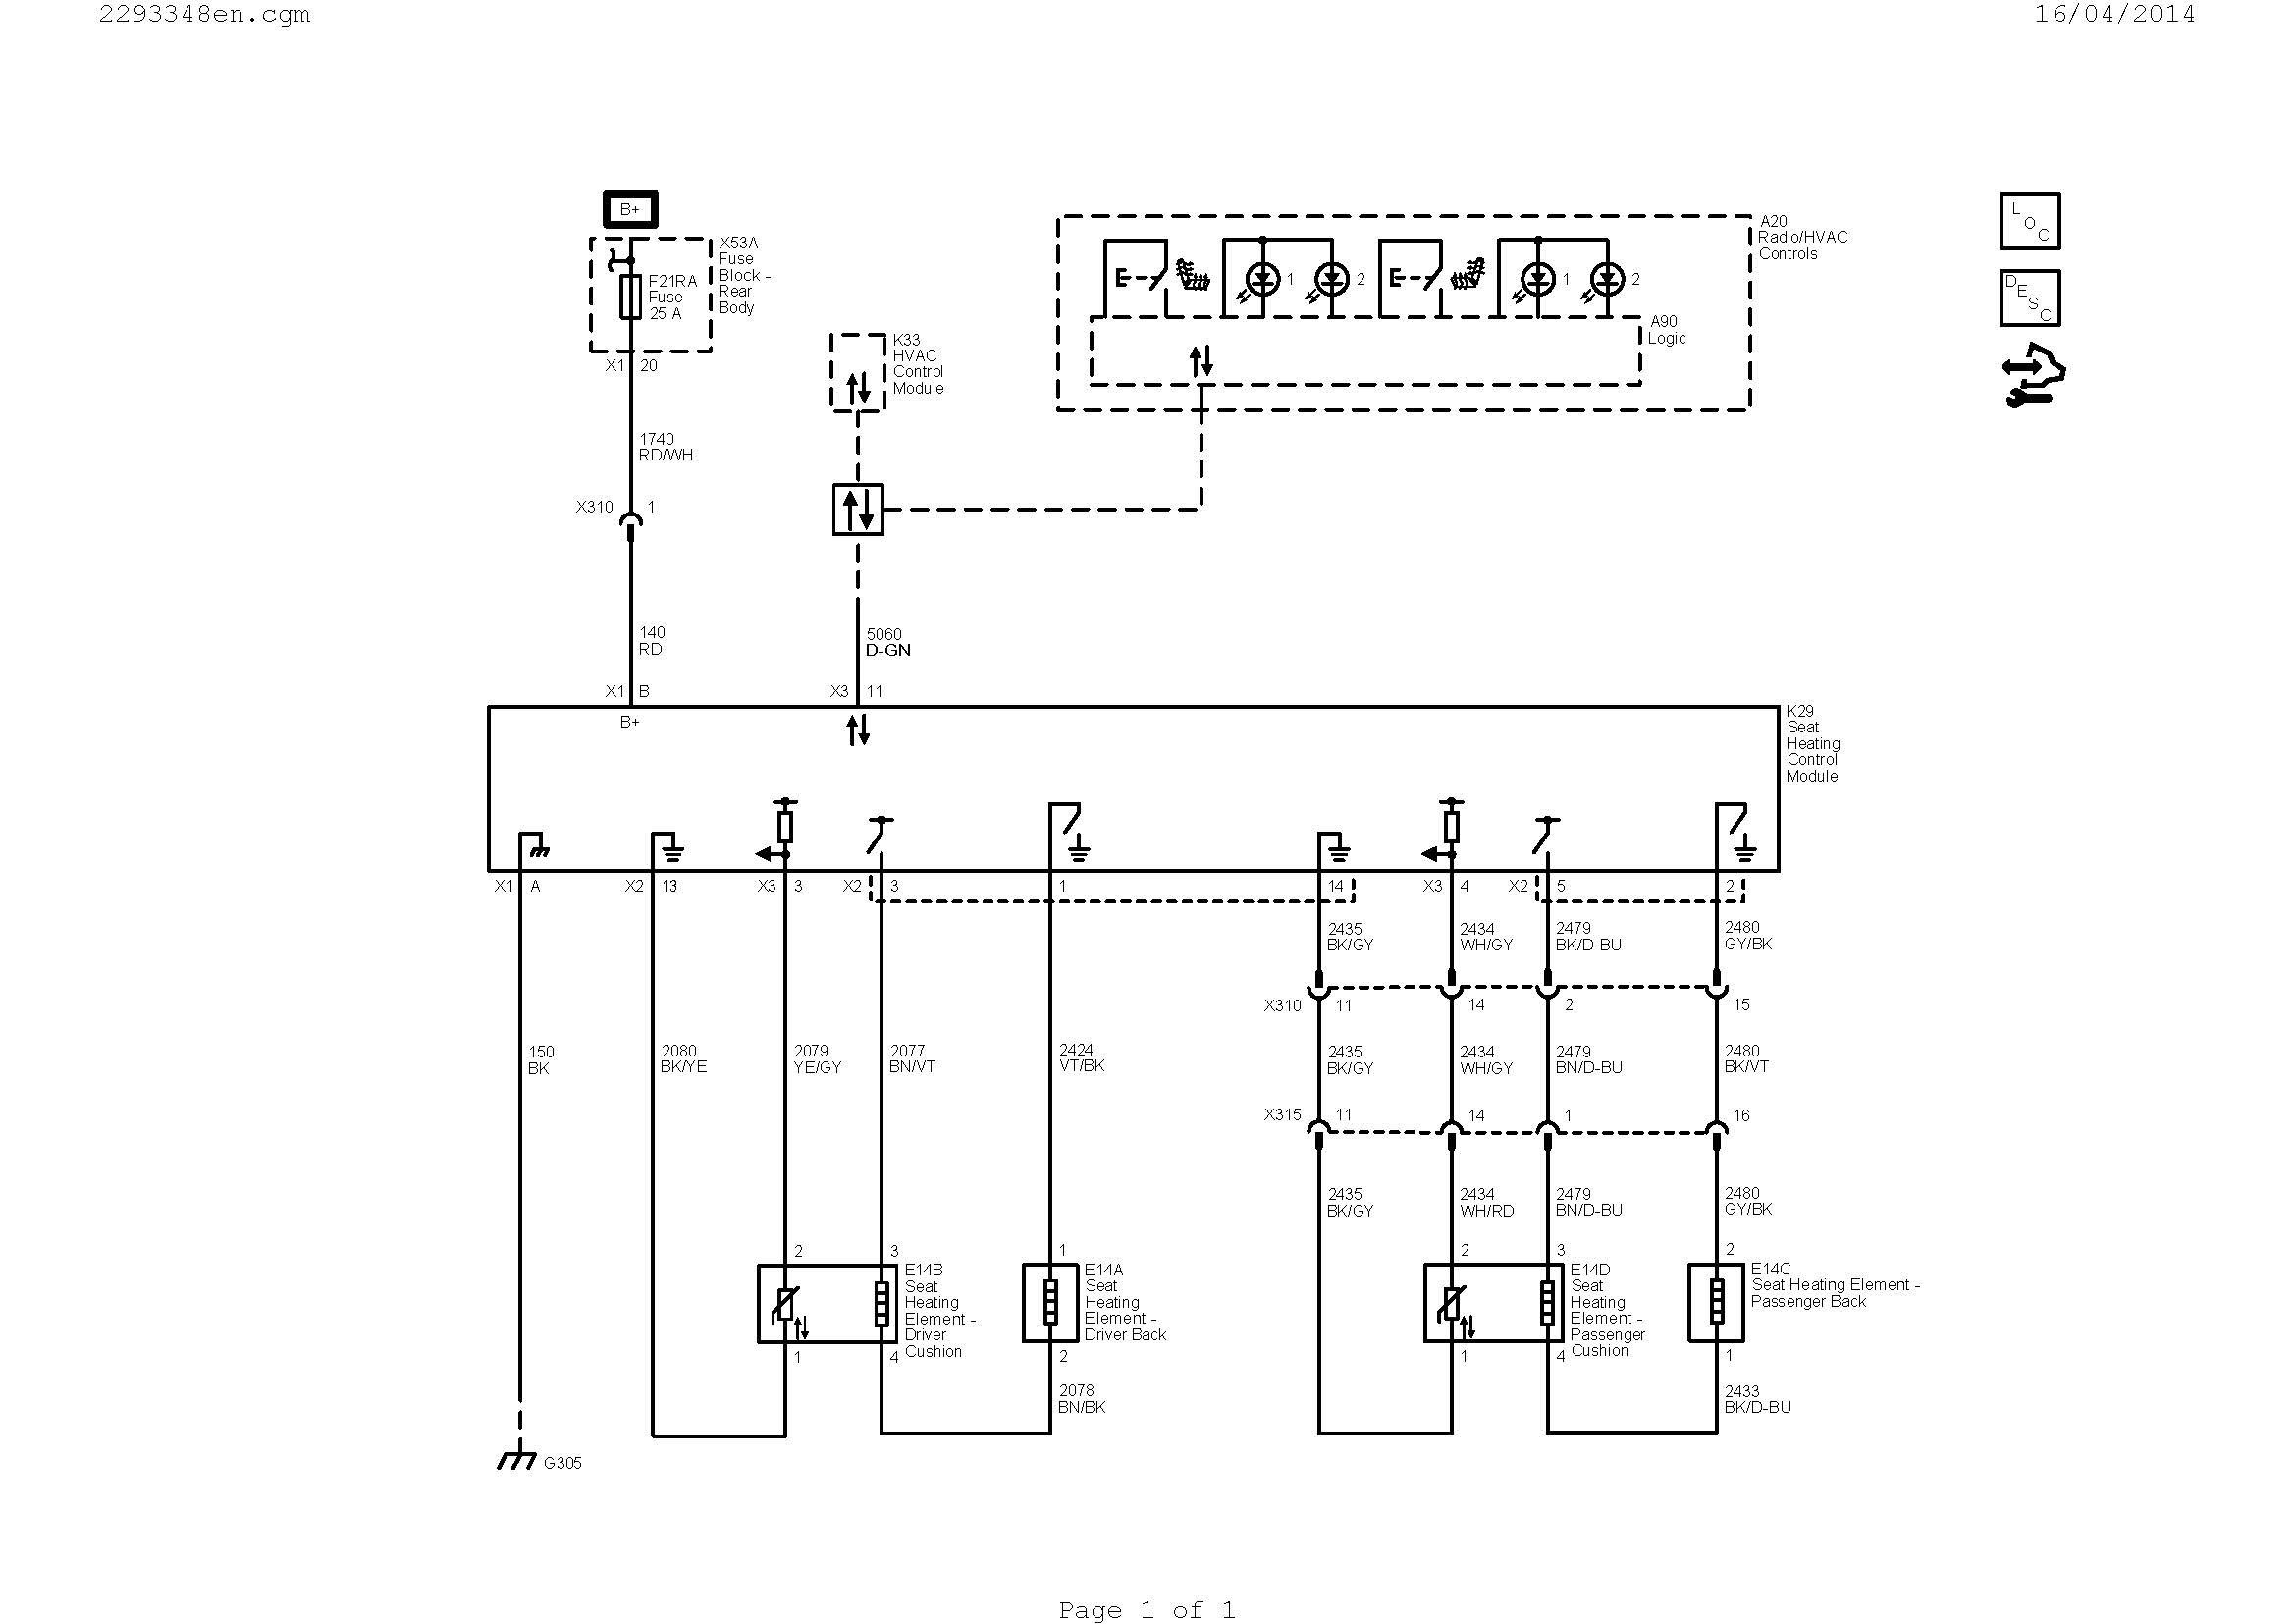 hk42fz009 wiring diagram Download-furnace wiring diagram Download Furnace Parts Diagram New Hvac Diagram Best Hvac Diagram 0d – DOWNLOAD Wiring Diagram 16-j